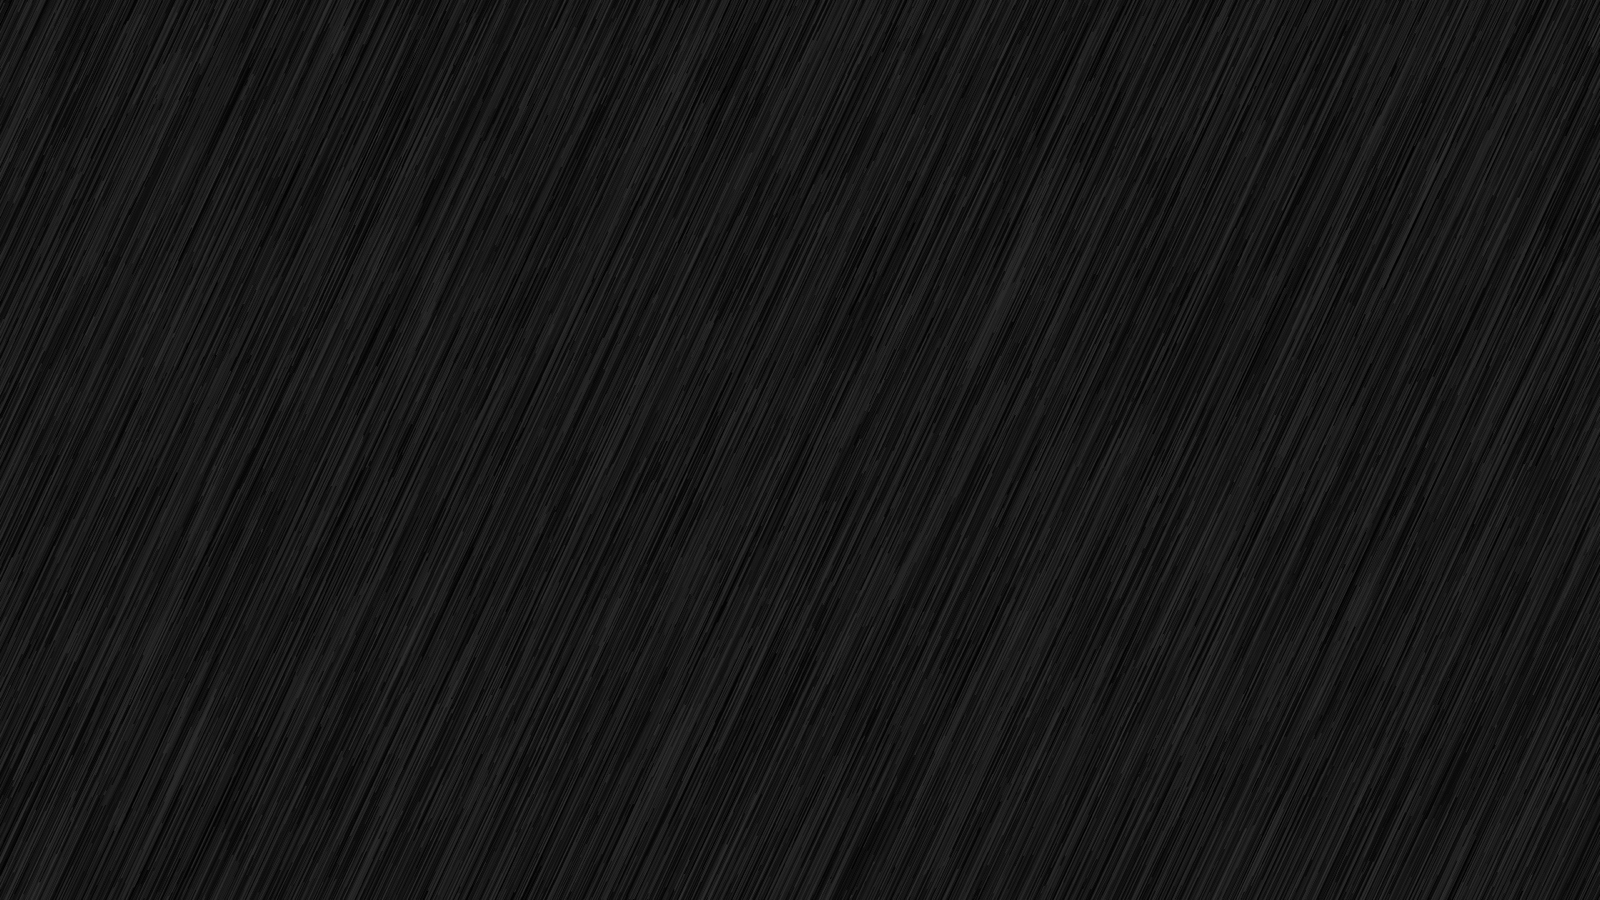 Rain effect png #34474 - Free Icons and PNG Backgrounds